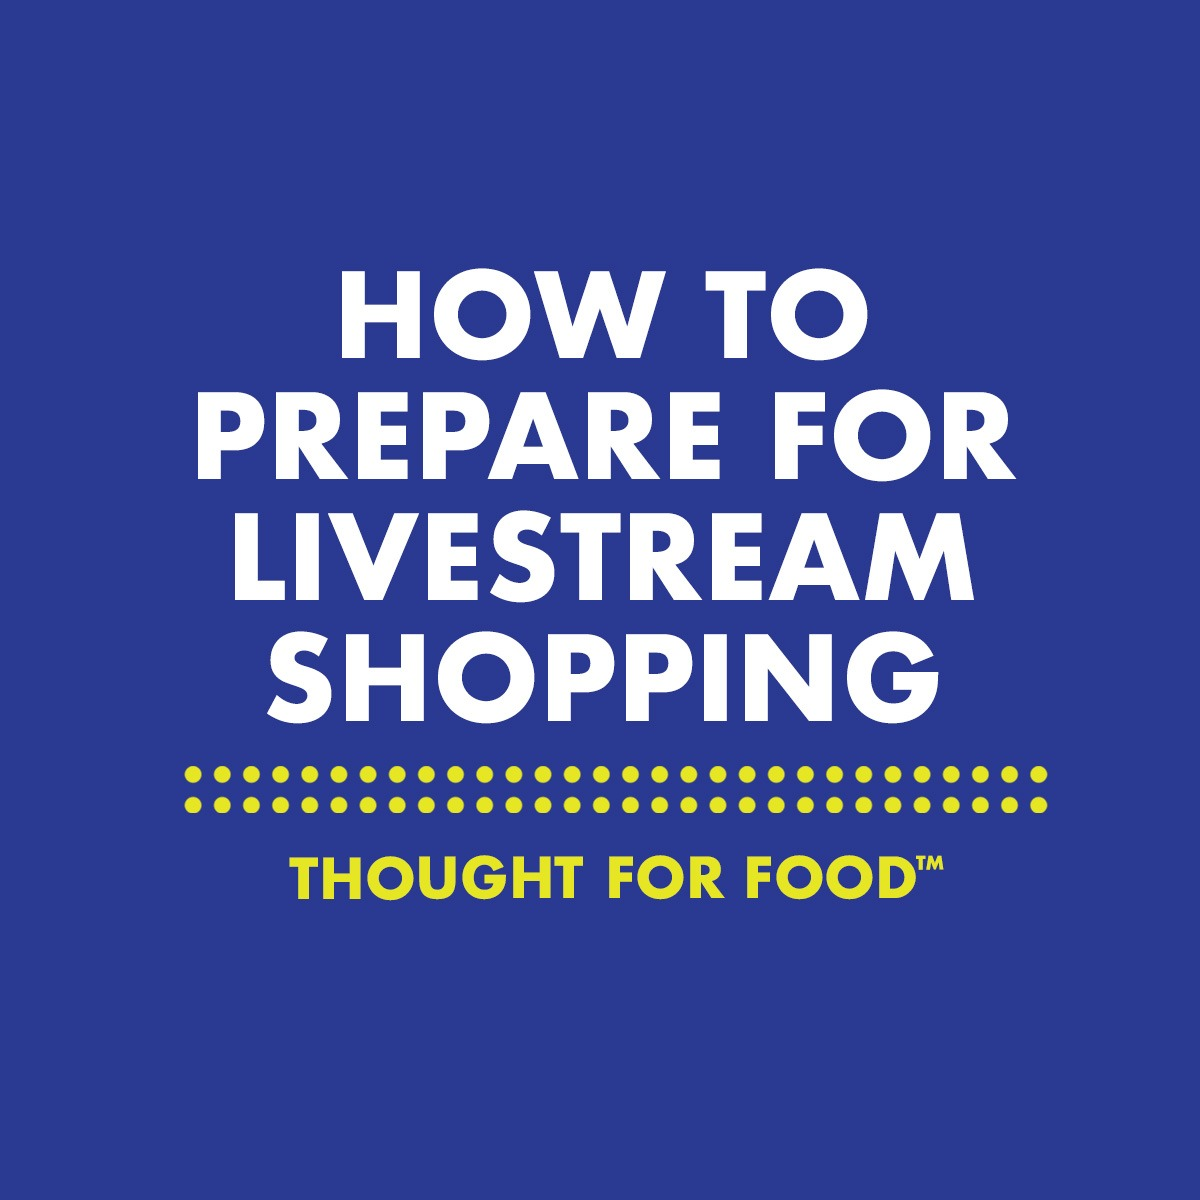 How to prepare for livestream shopping